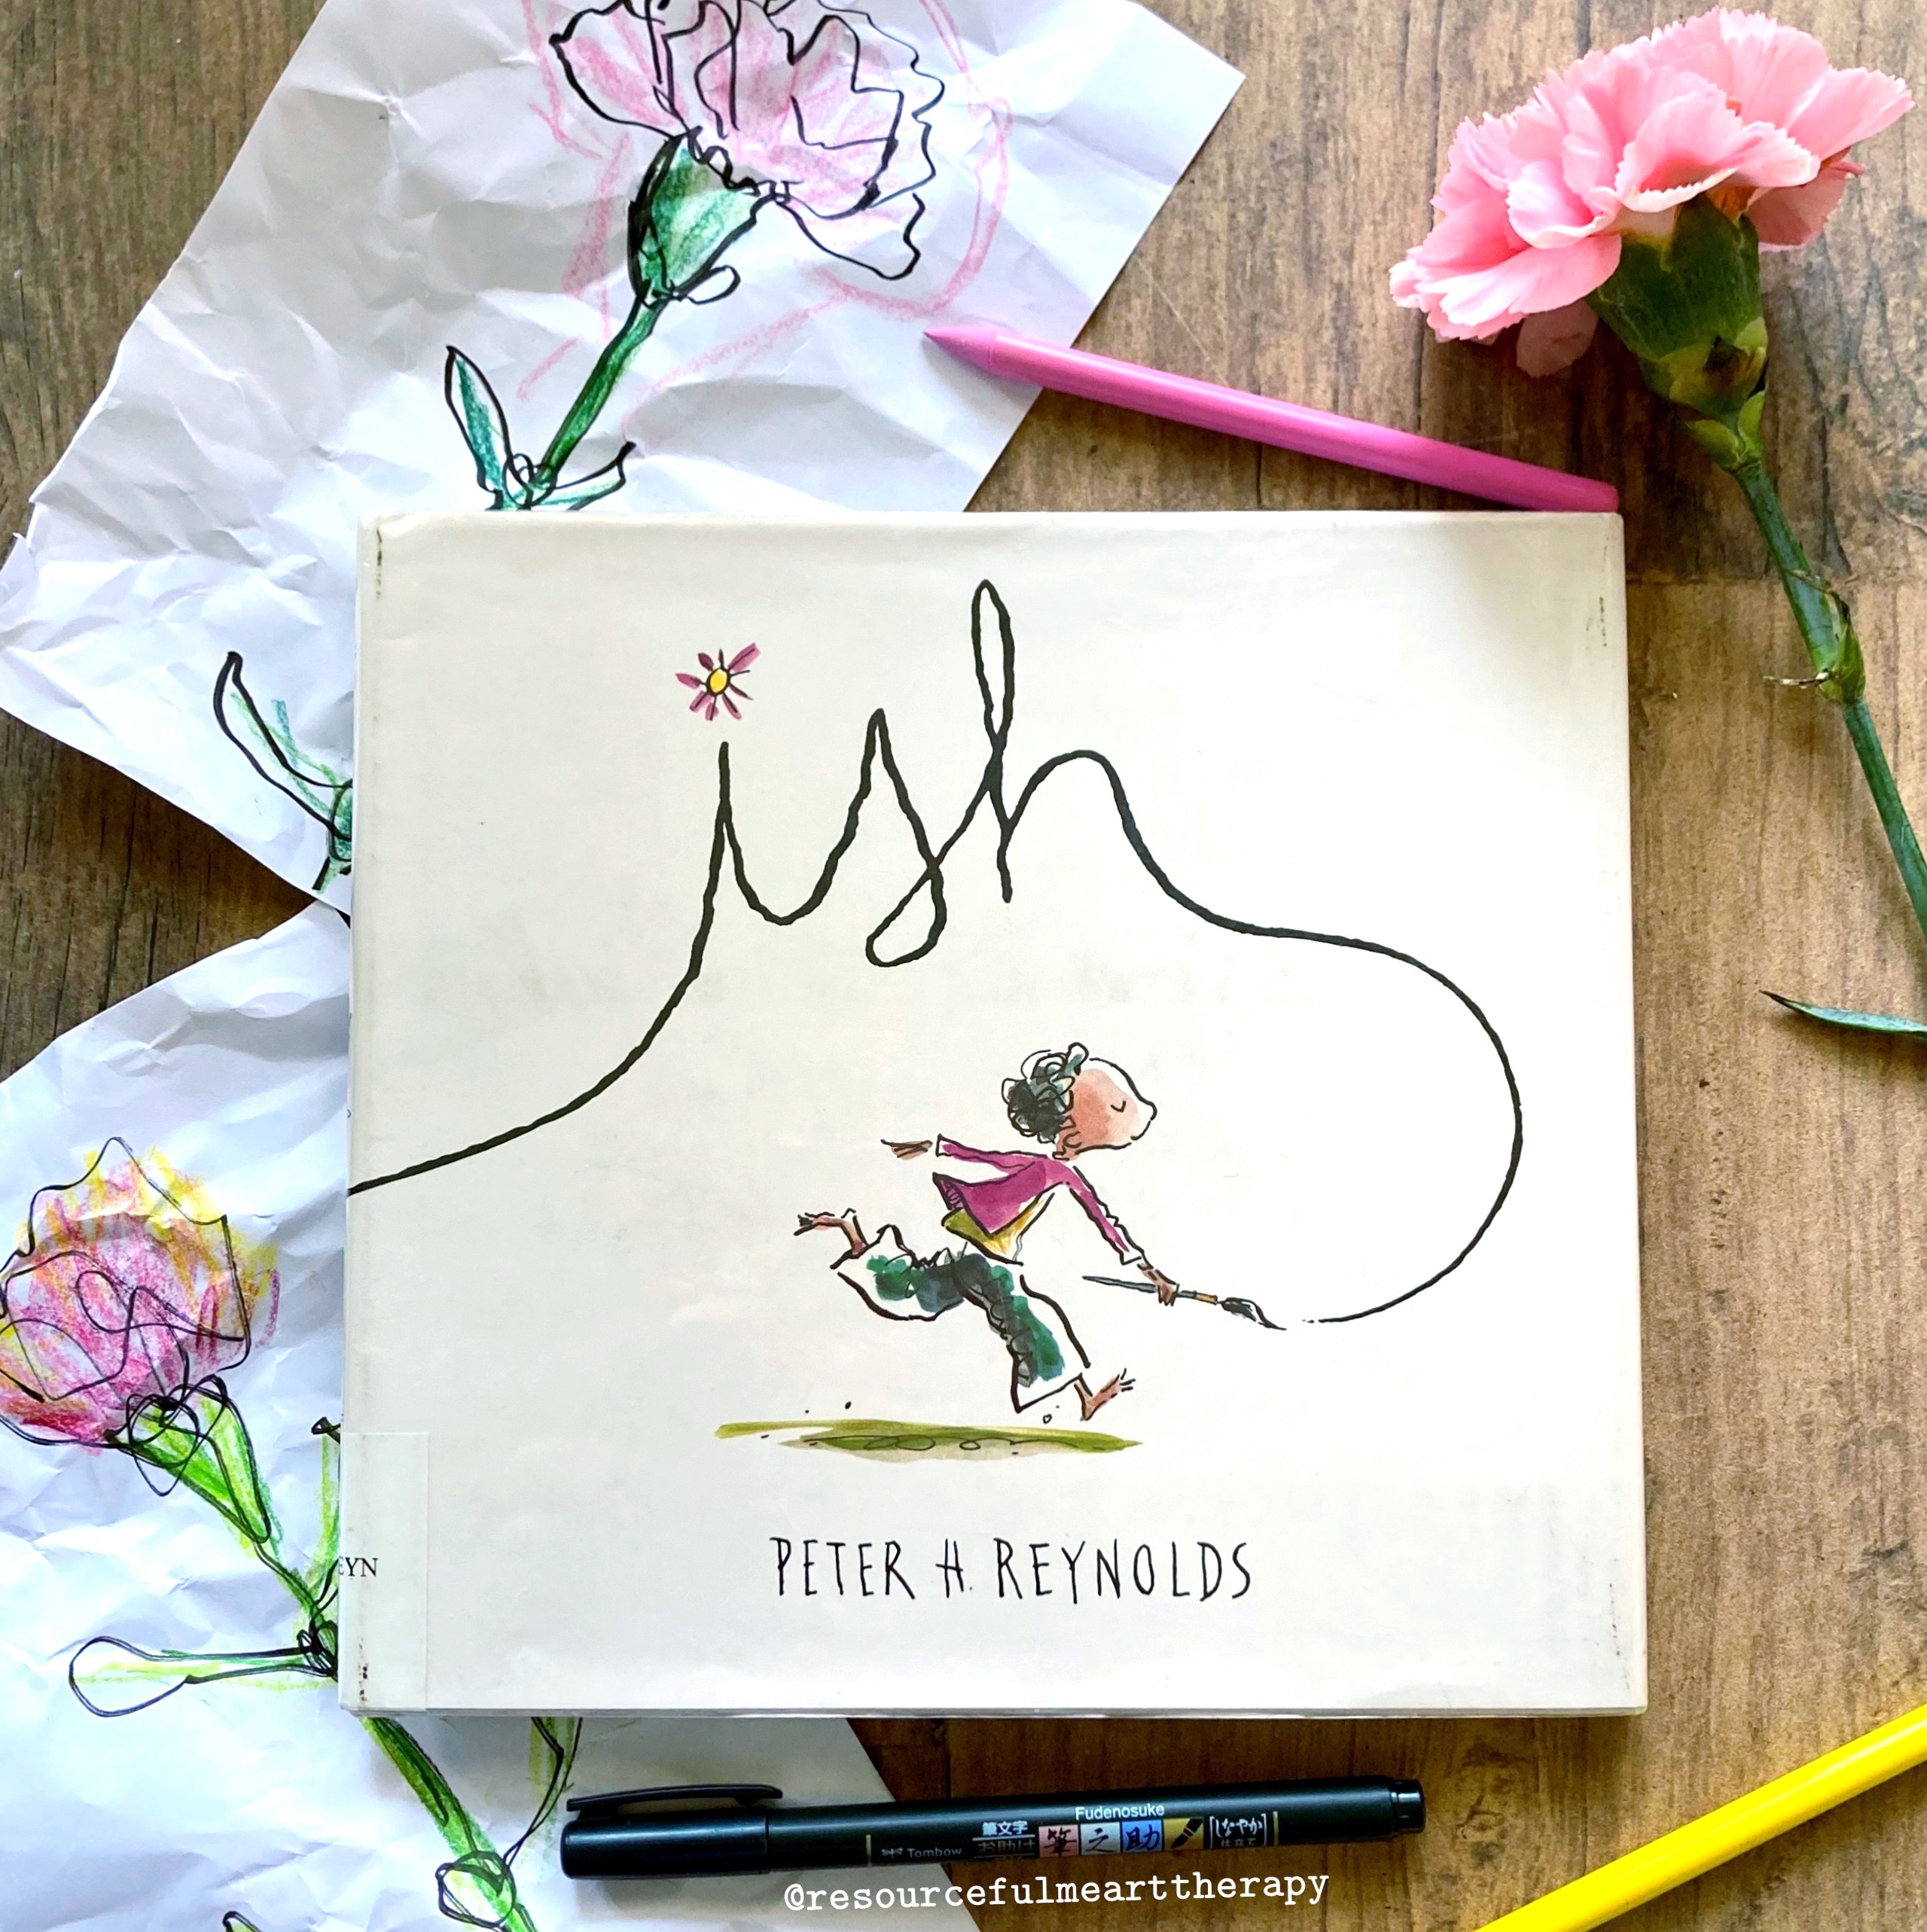 """Photo of the children's book """"Ish"""" by Peter Reynolds, surrounded by crumpled drawings and a pink carnation"""